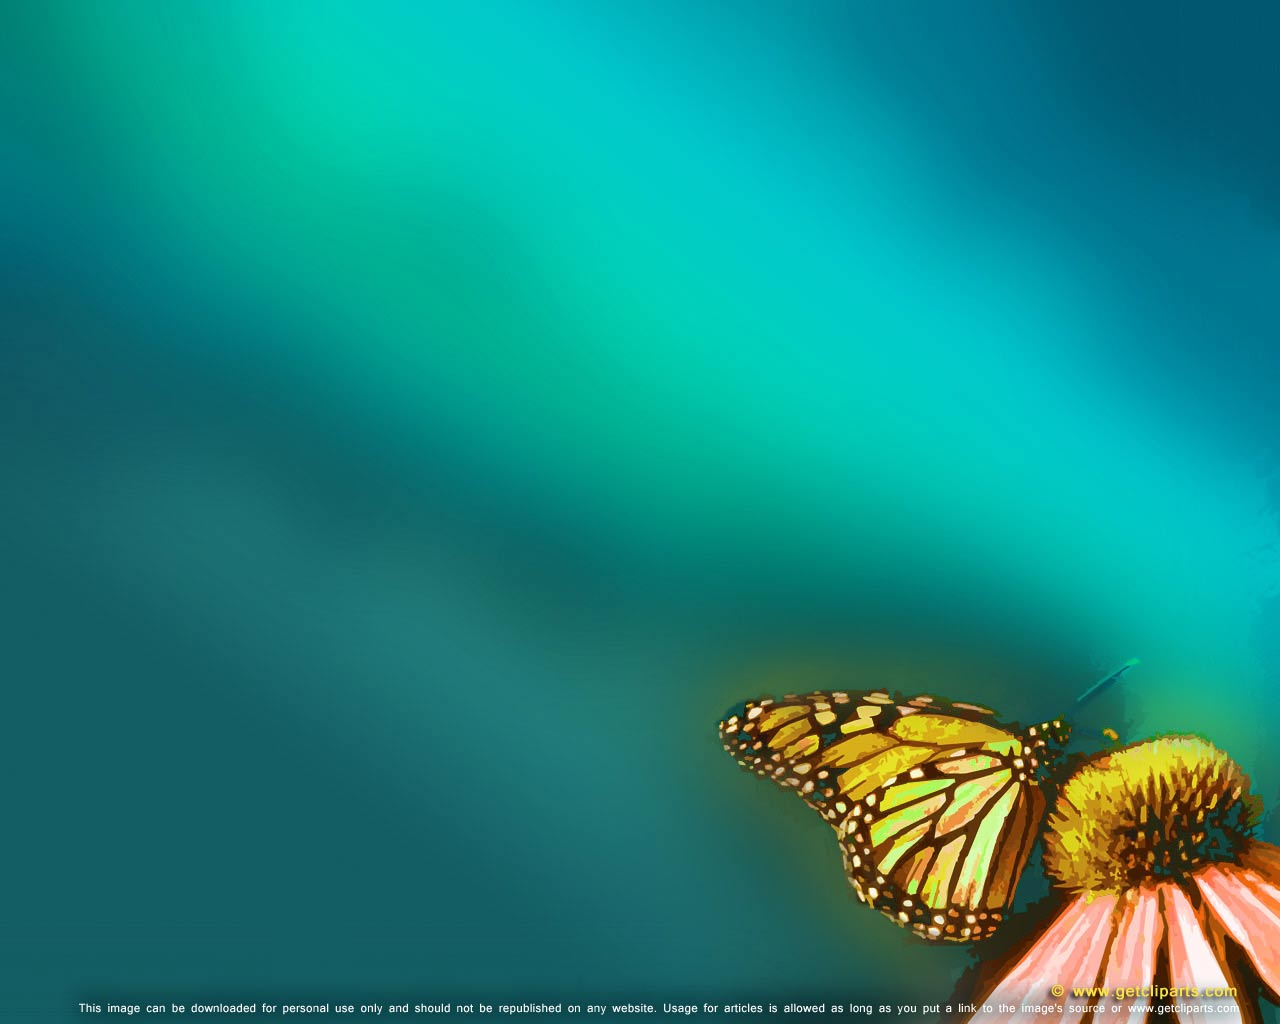 Butterfly – animal themes for powerpoint background. Download this